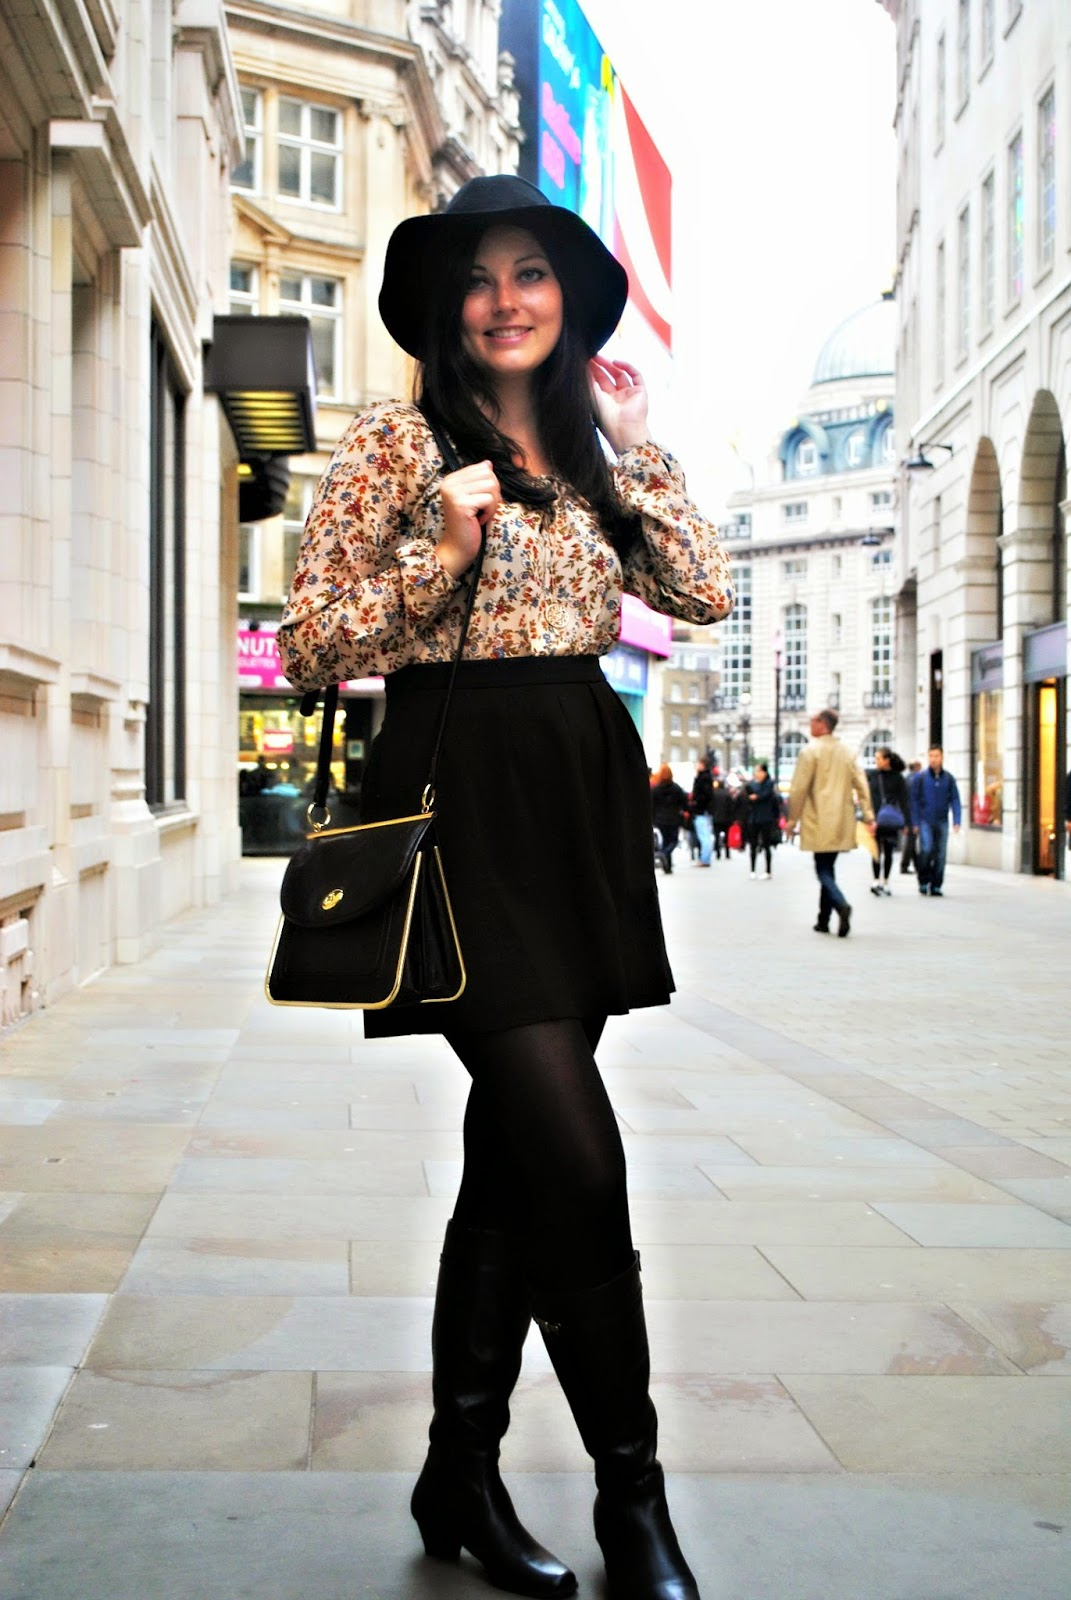 Stradivarius boho vintage blouse Fashion post shot in London